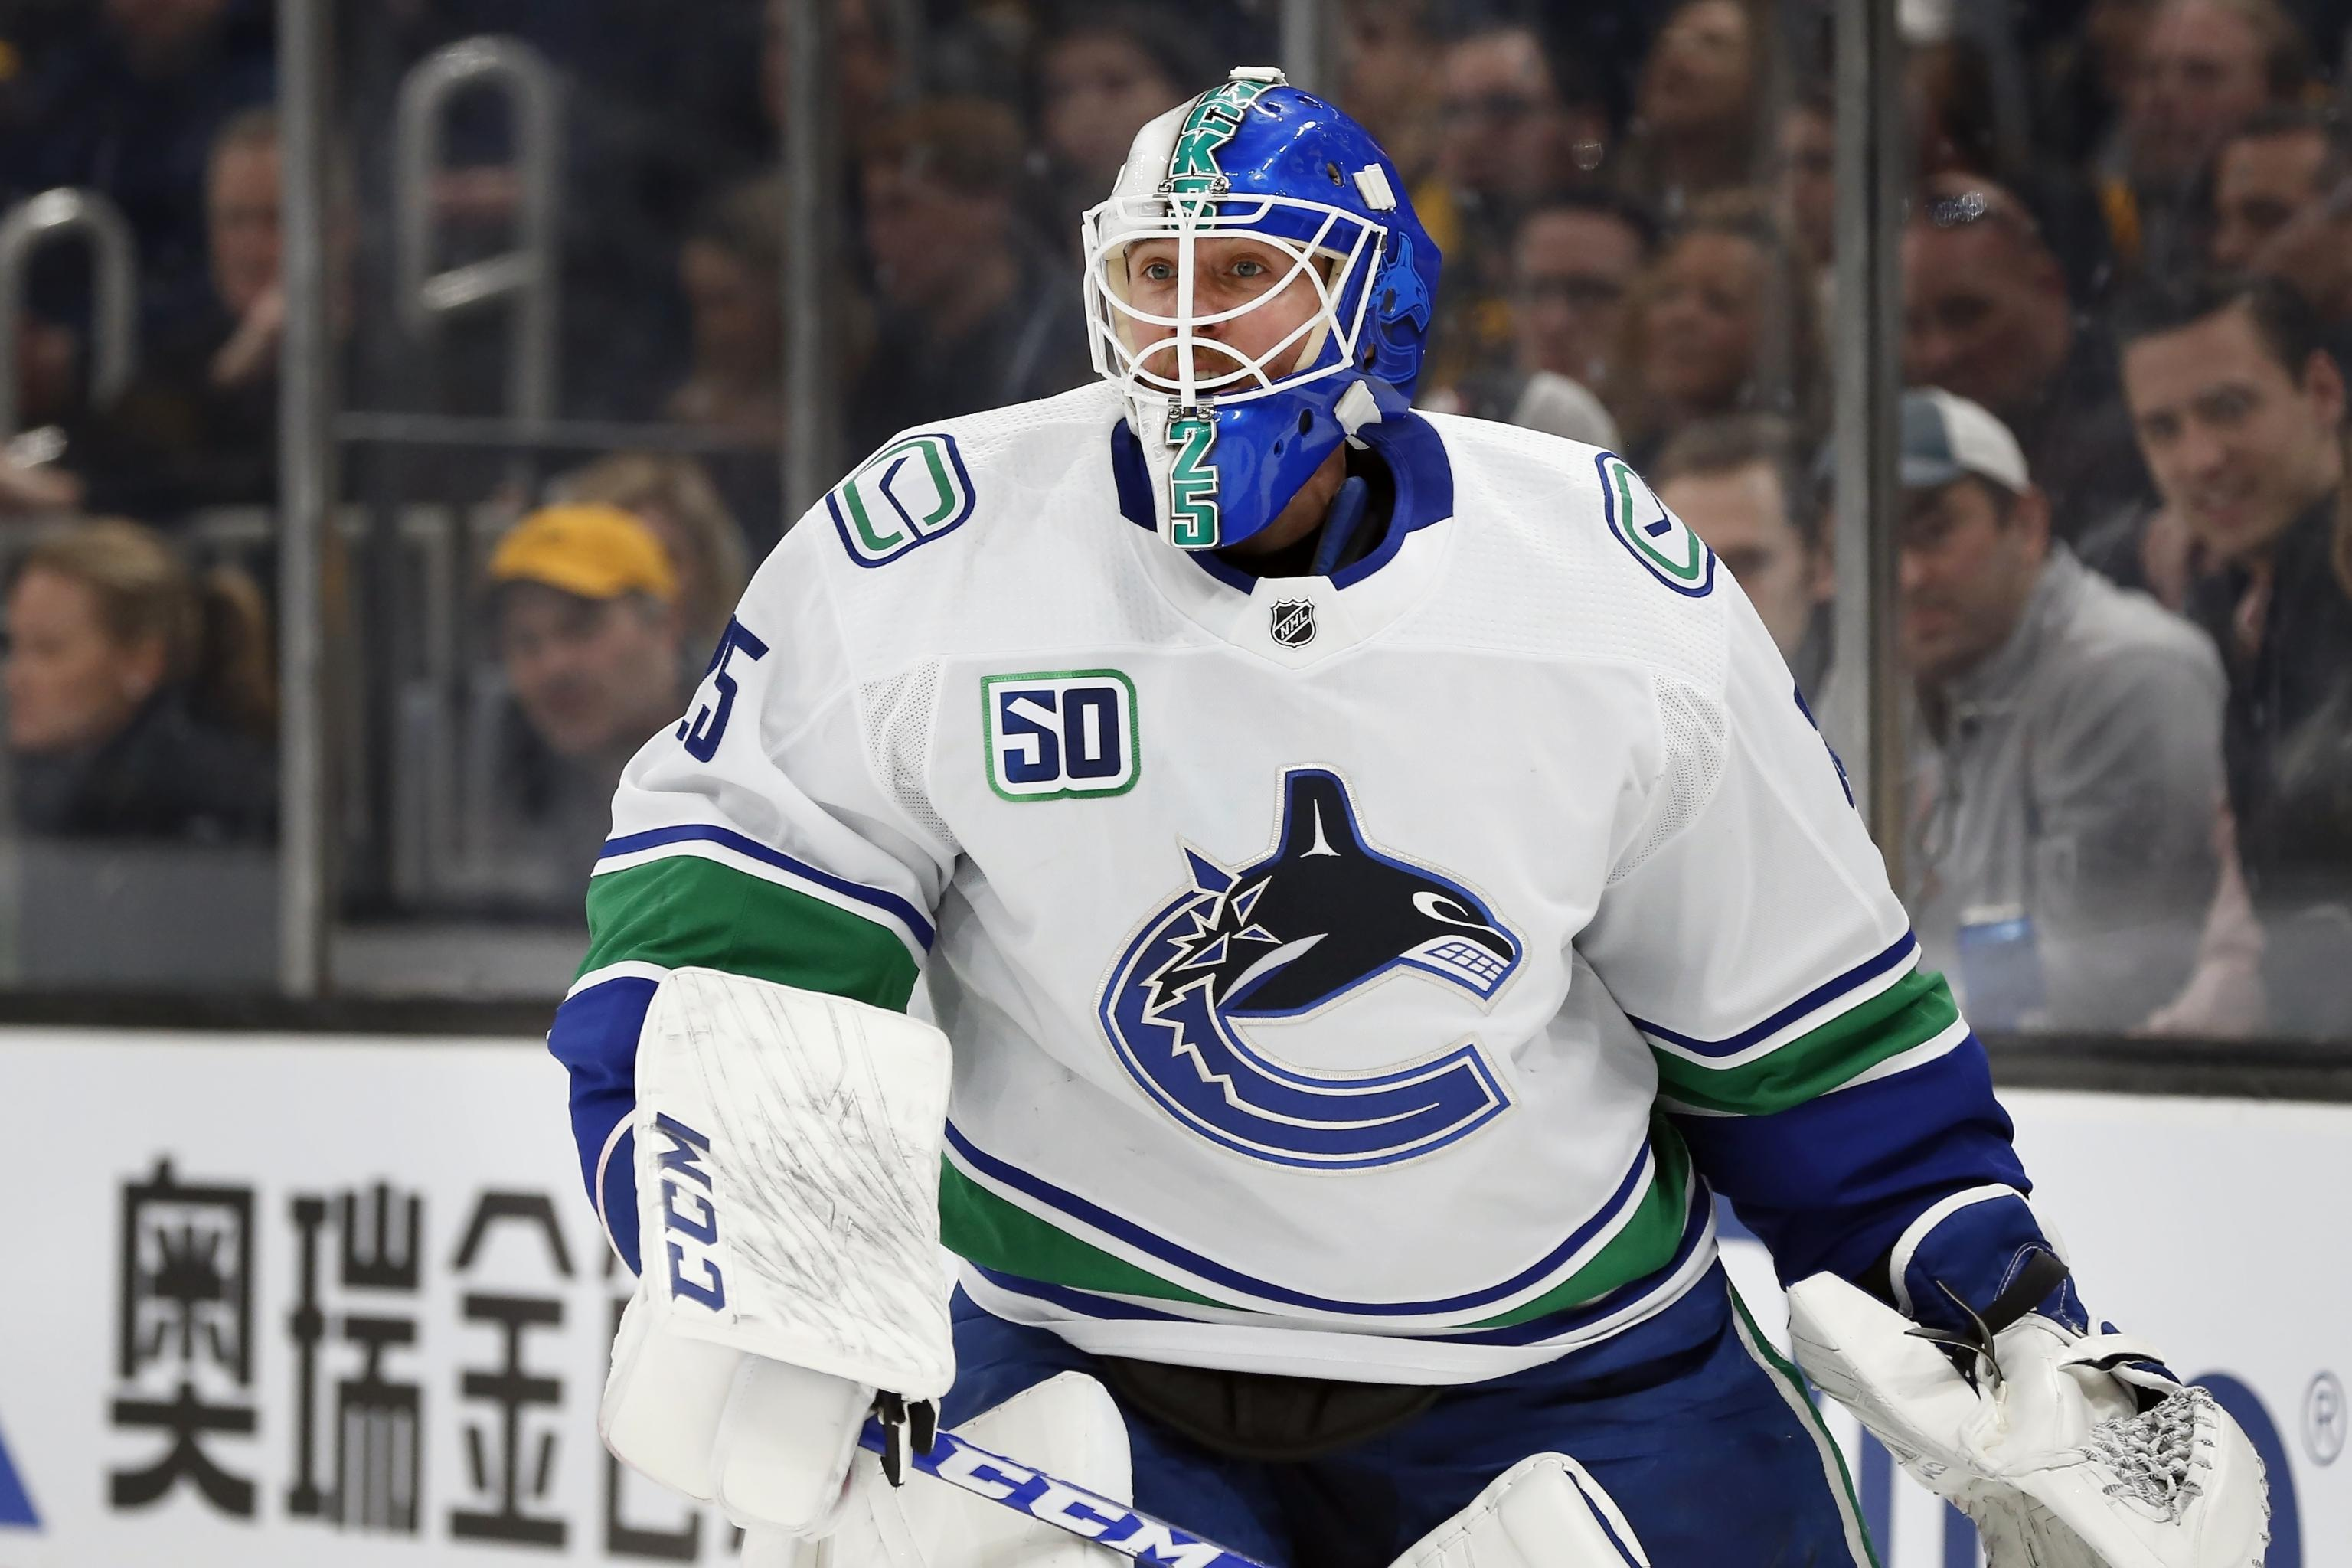 Nhl Free Agency 2020 Latest Predictions For Jacob Markstrom Top Goalies Bleacher Report Latest News Videos And Highlights